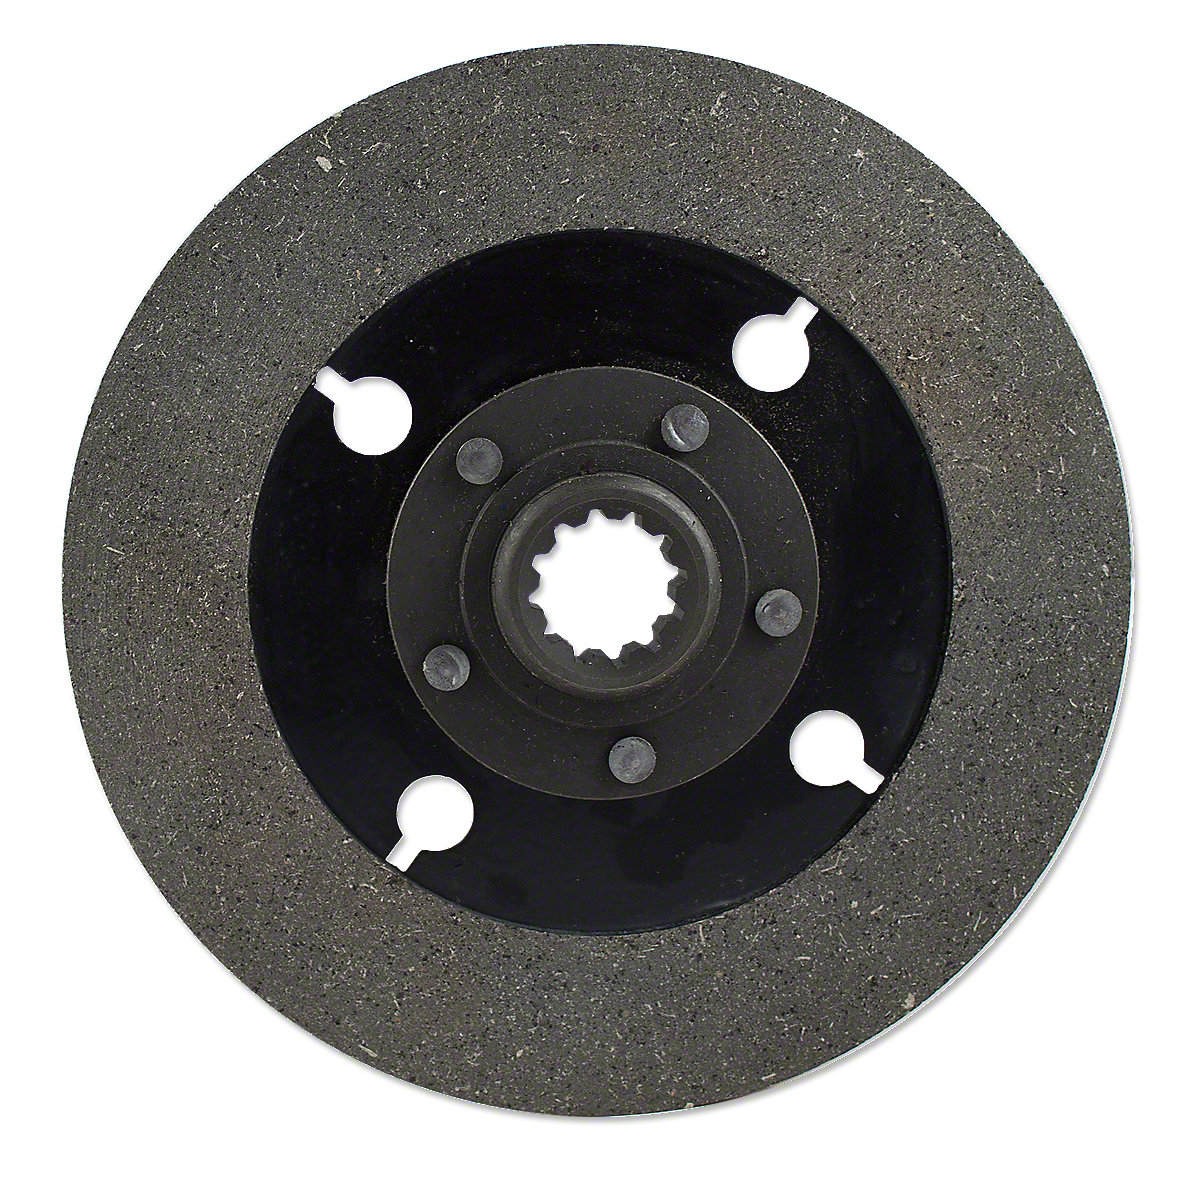 Oliver Tractor Clutch : Oliver pto clutch disc